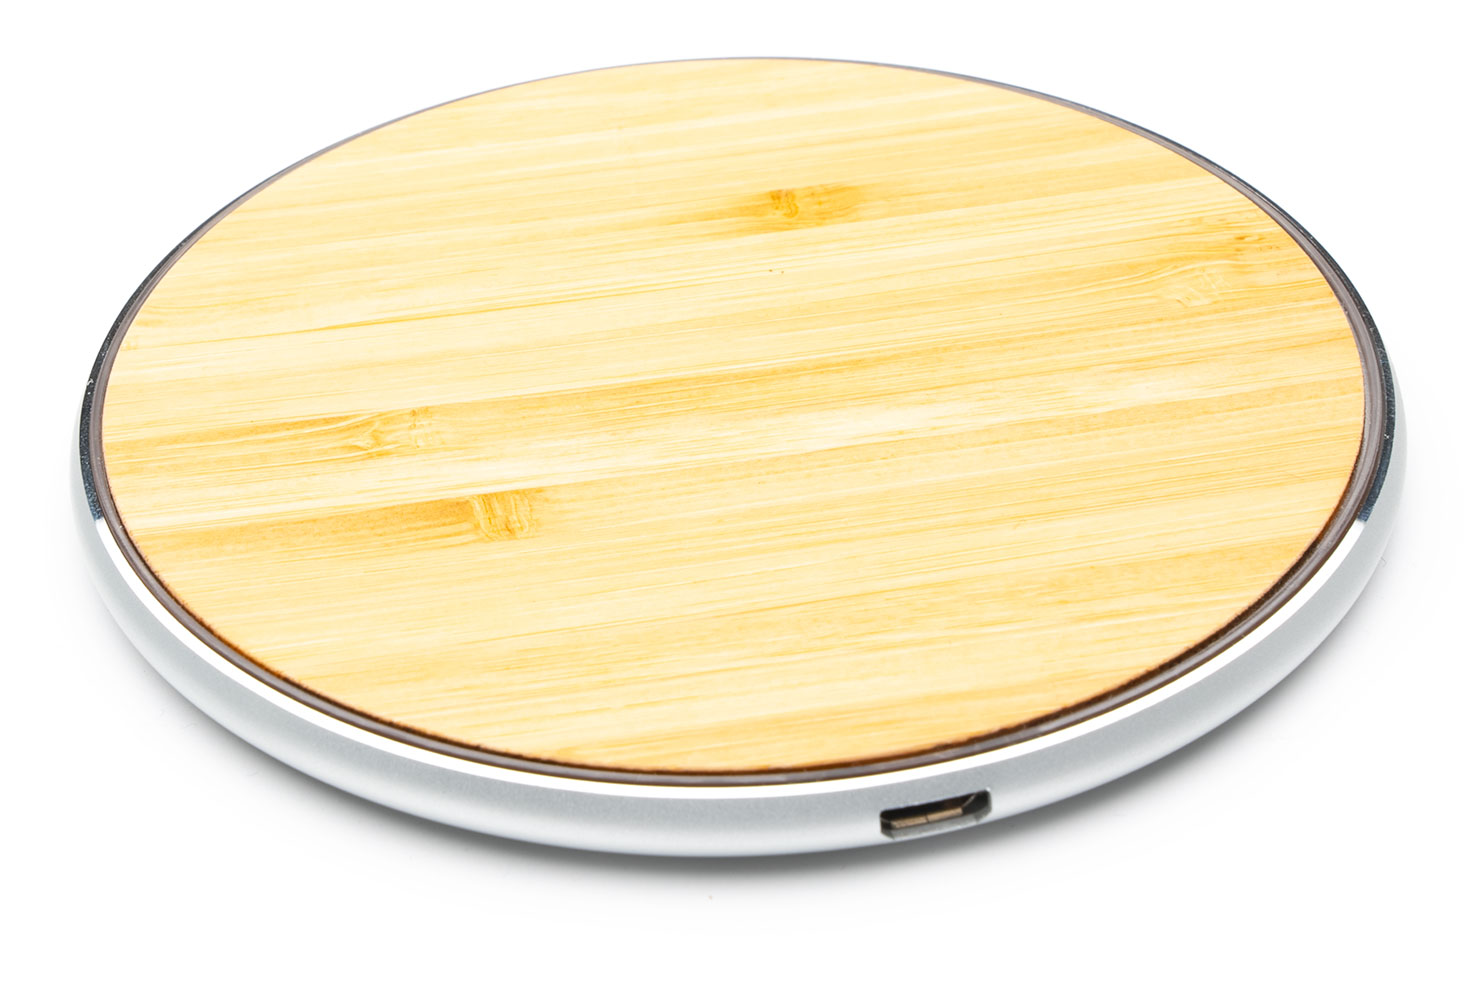 Google Pixel 3 Fast Wireless Charging Pad QI 15 Watts Aluminum Bamboo Wood Top With AC Charger